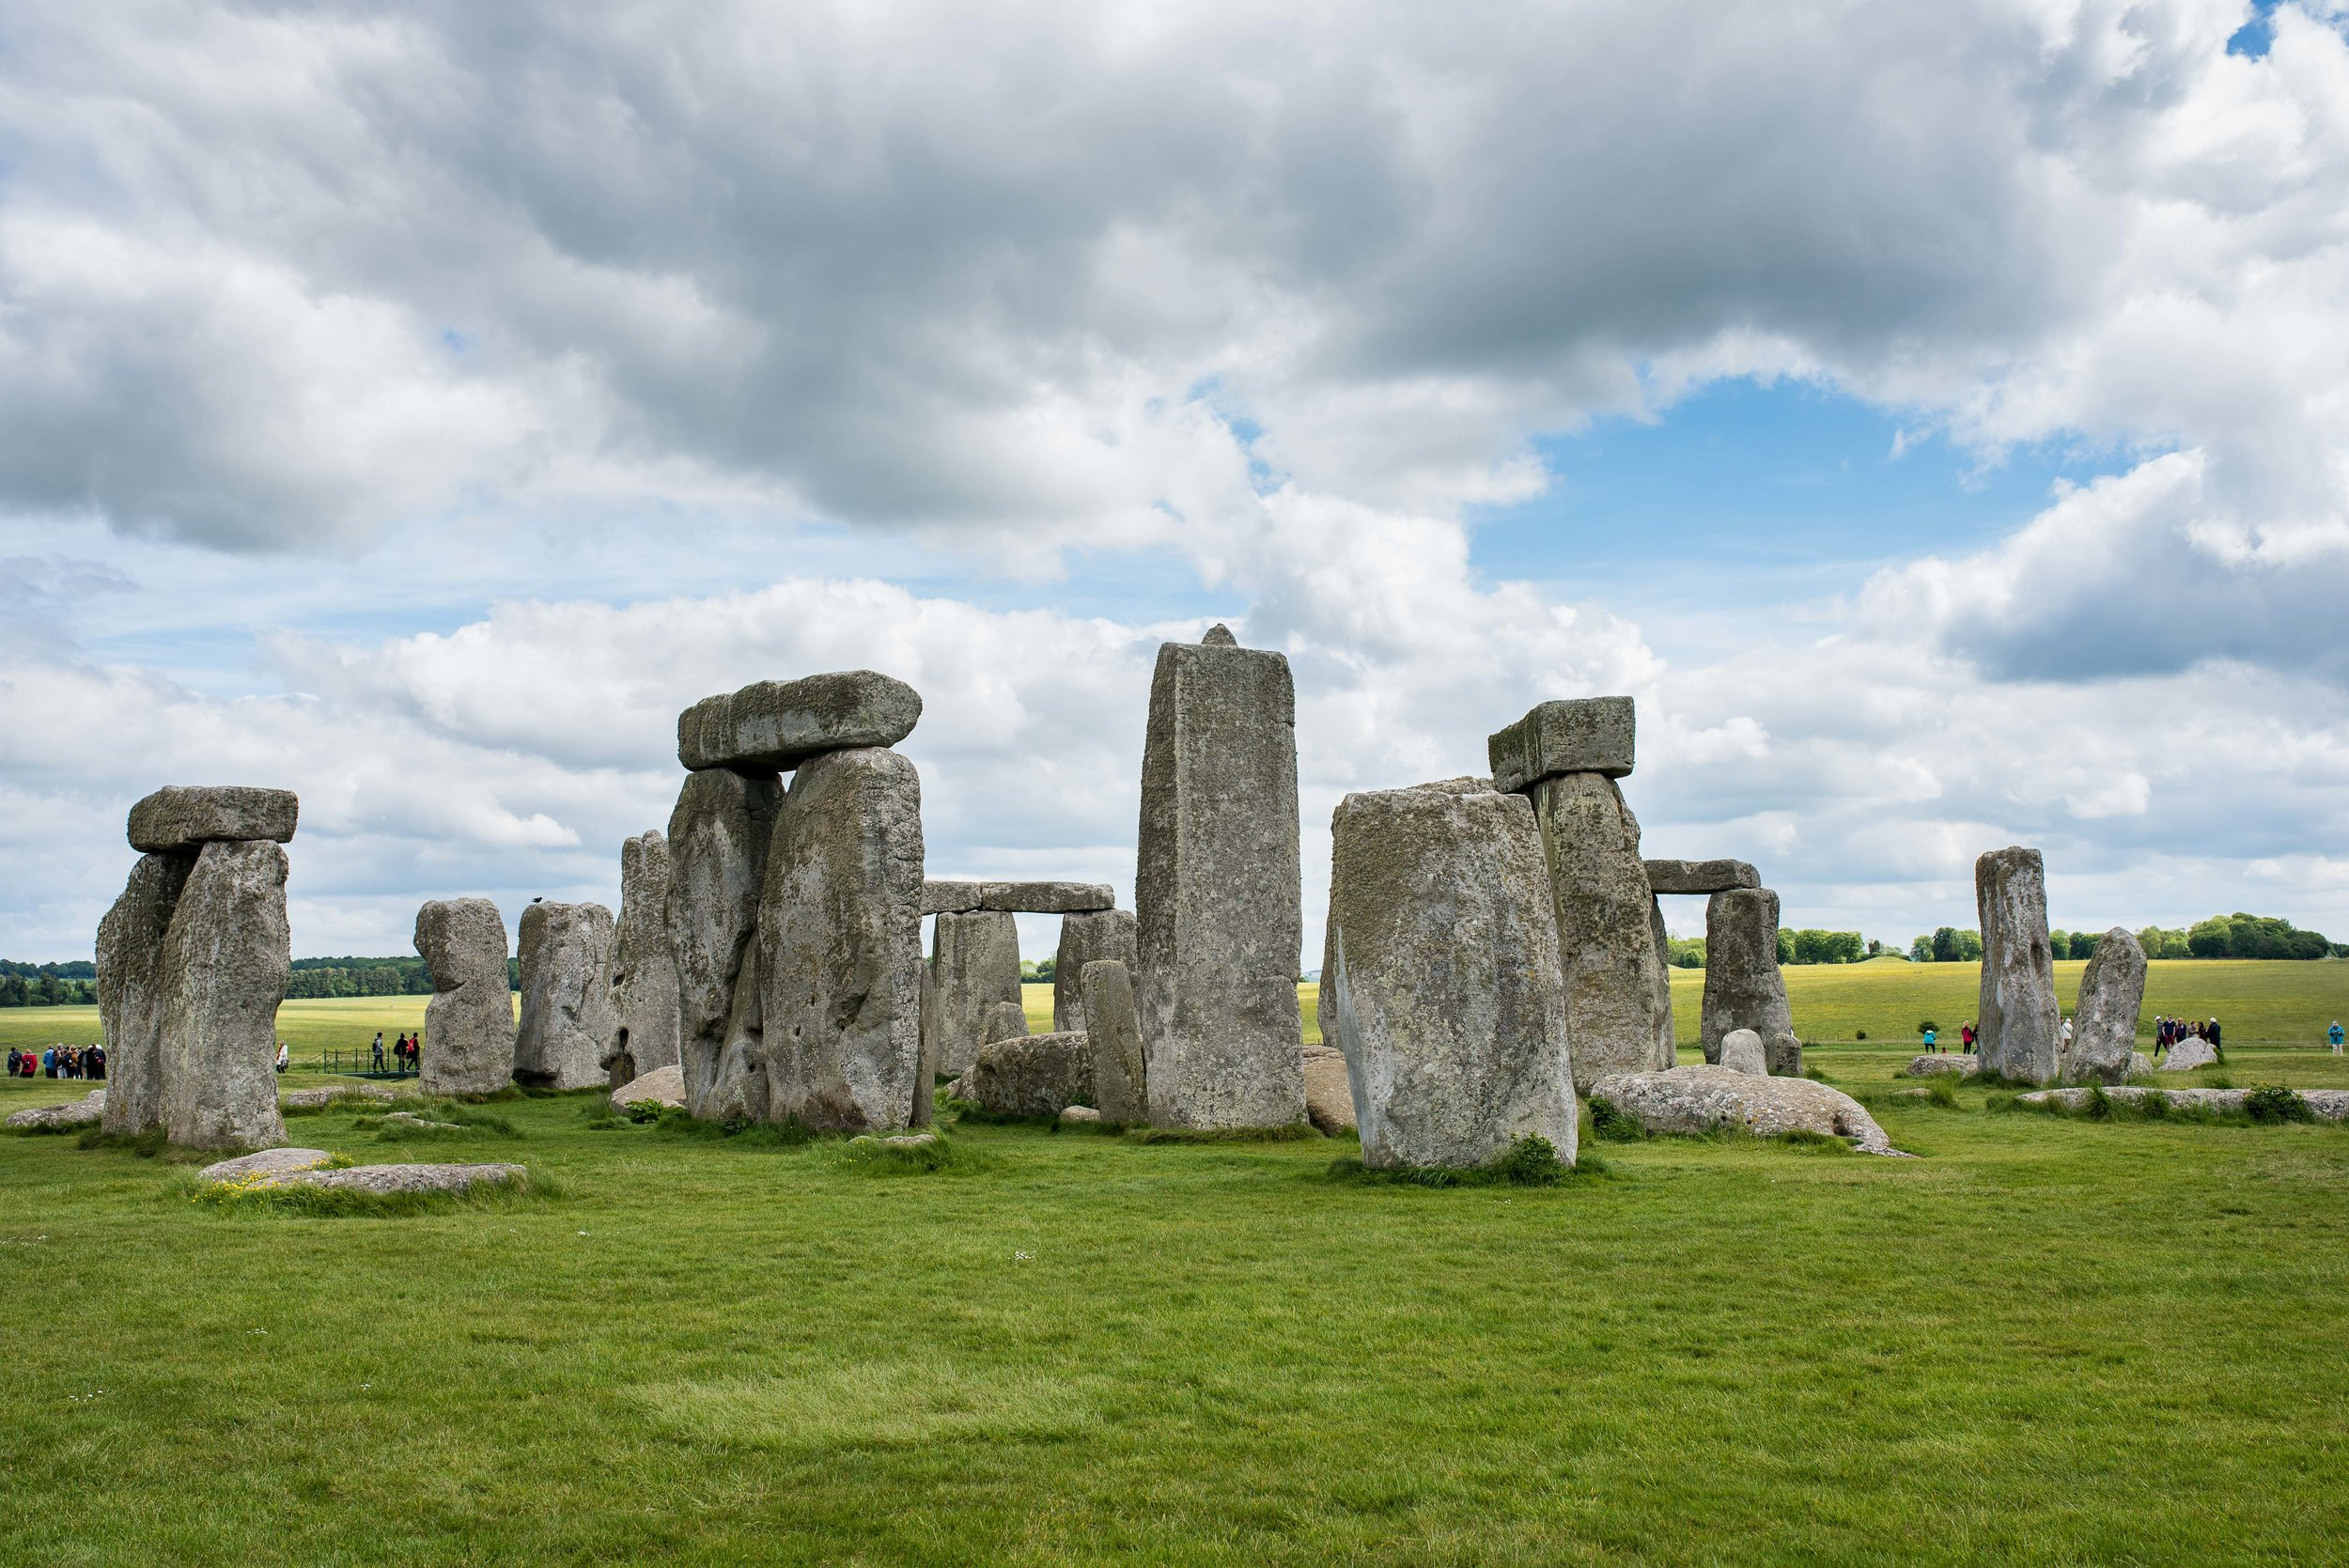 Stonehenge took our breath away to see in person.